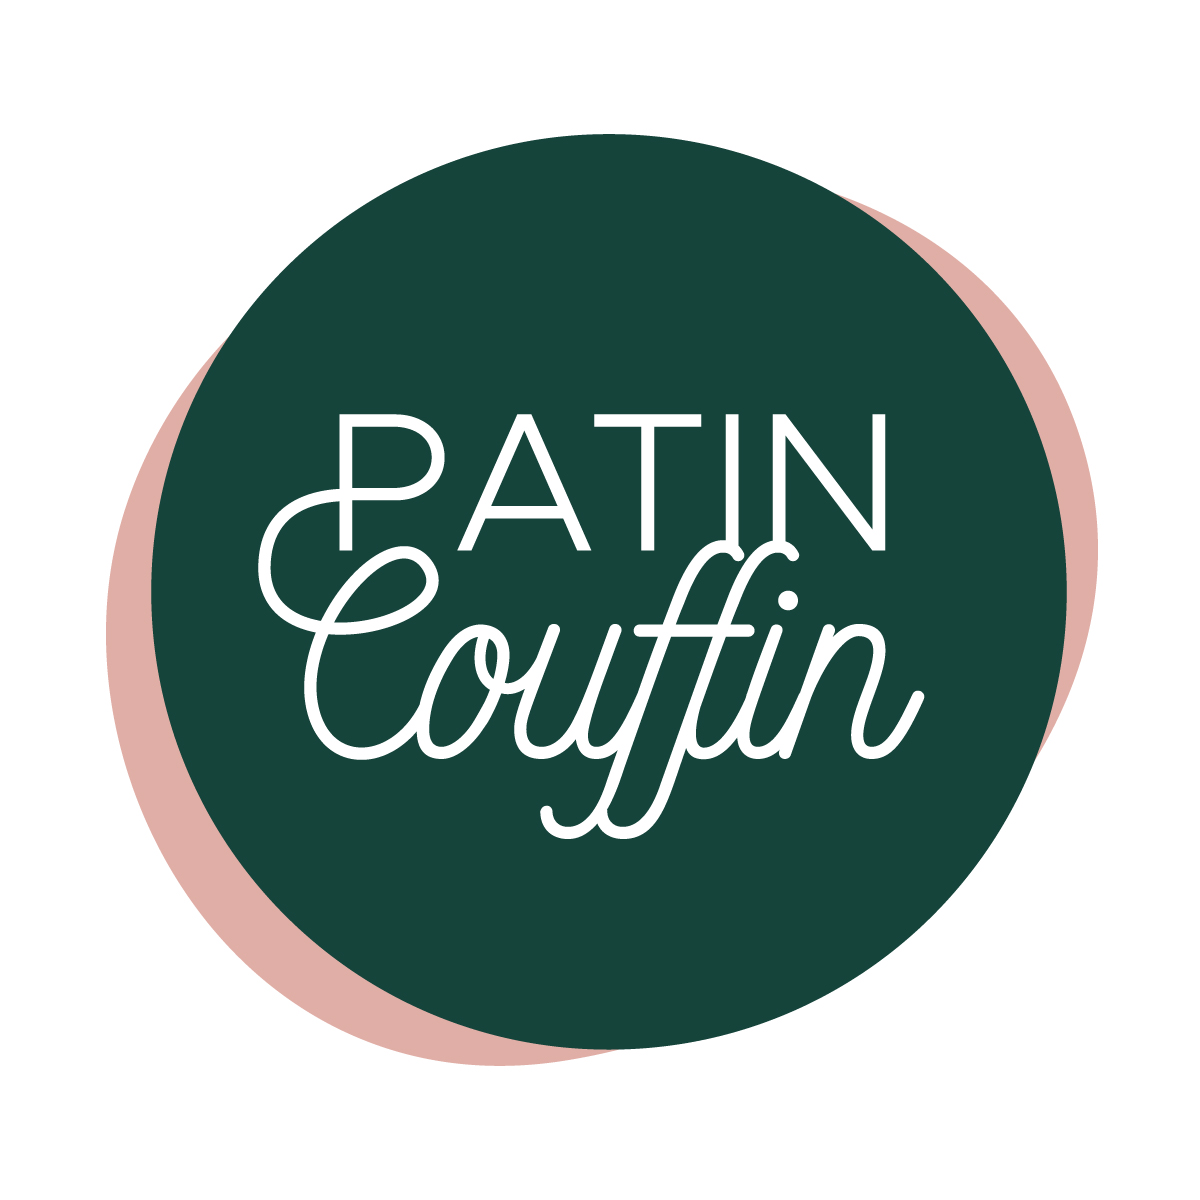 Patin Couffin